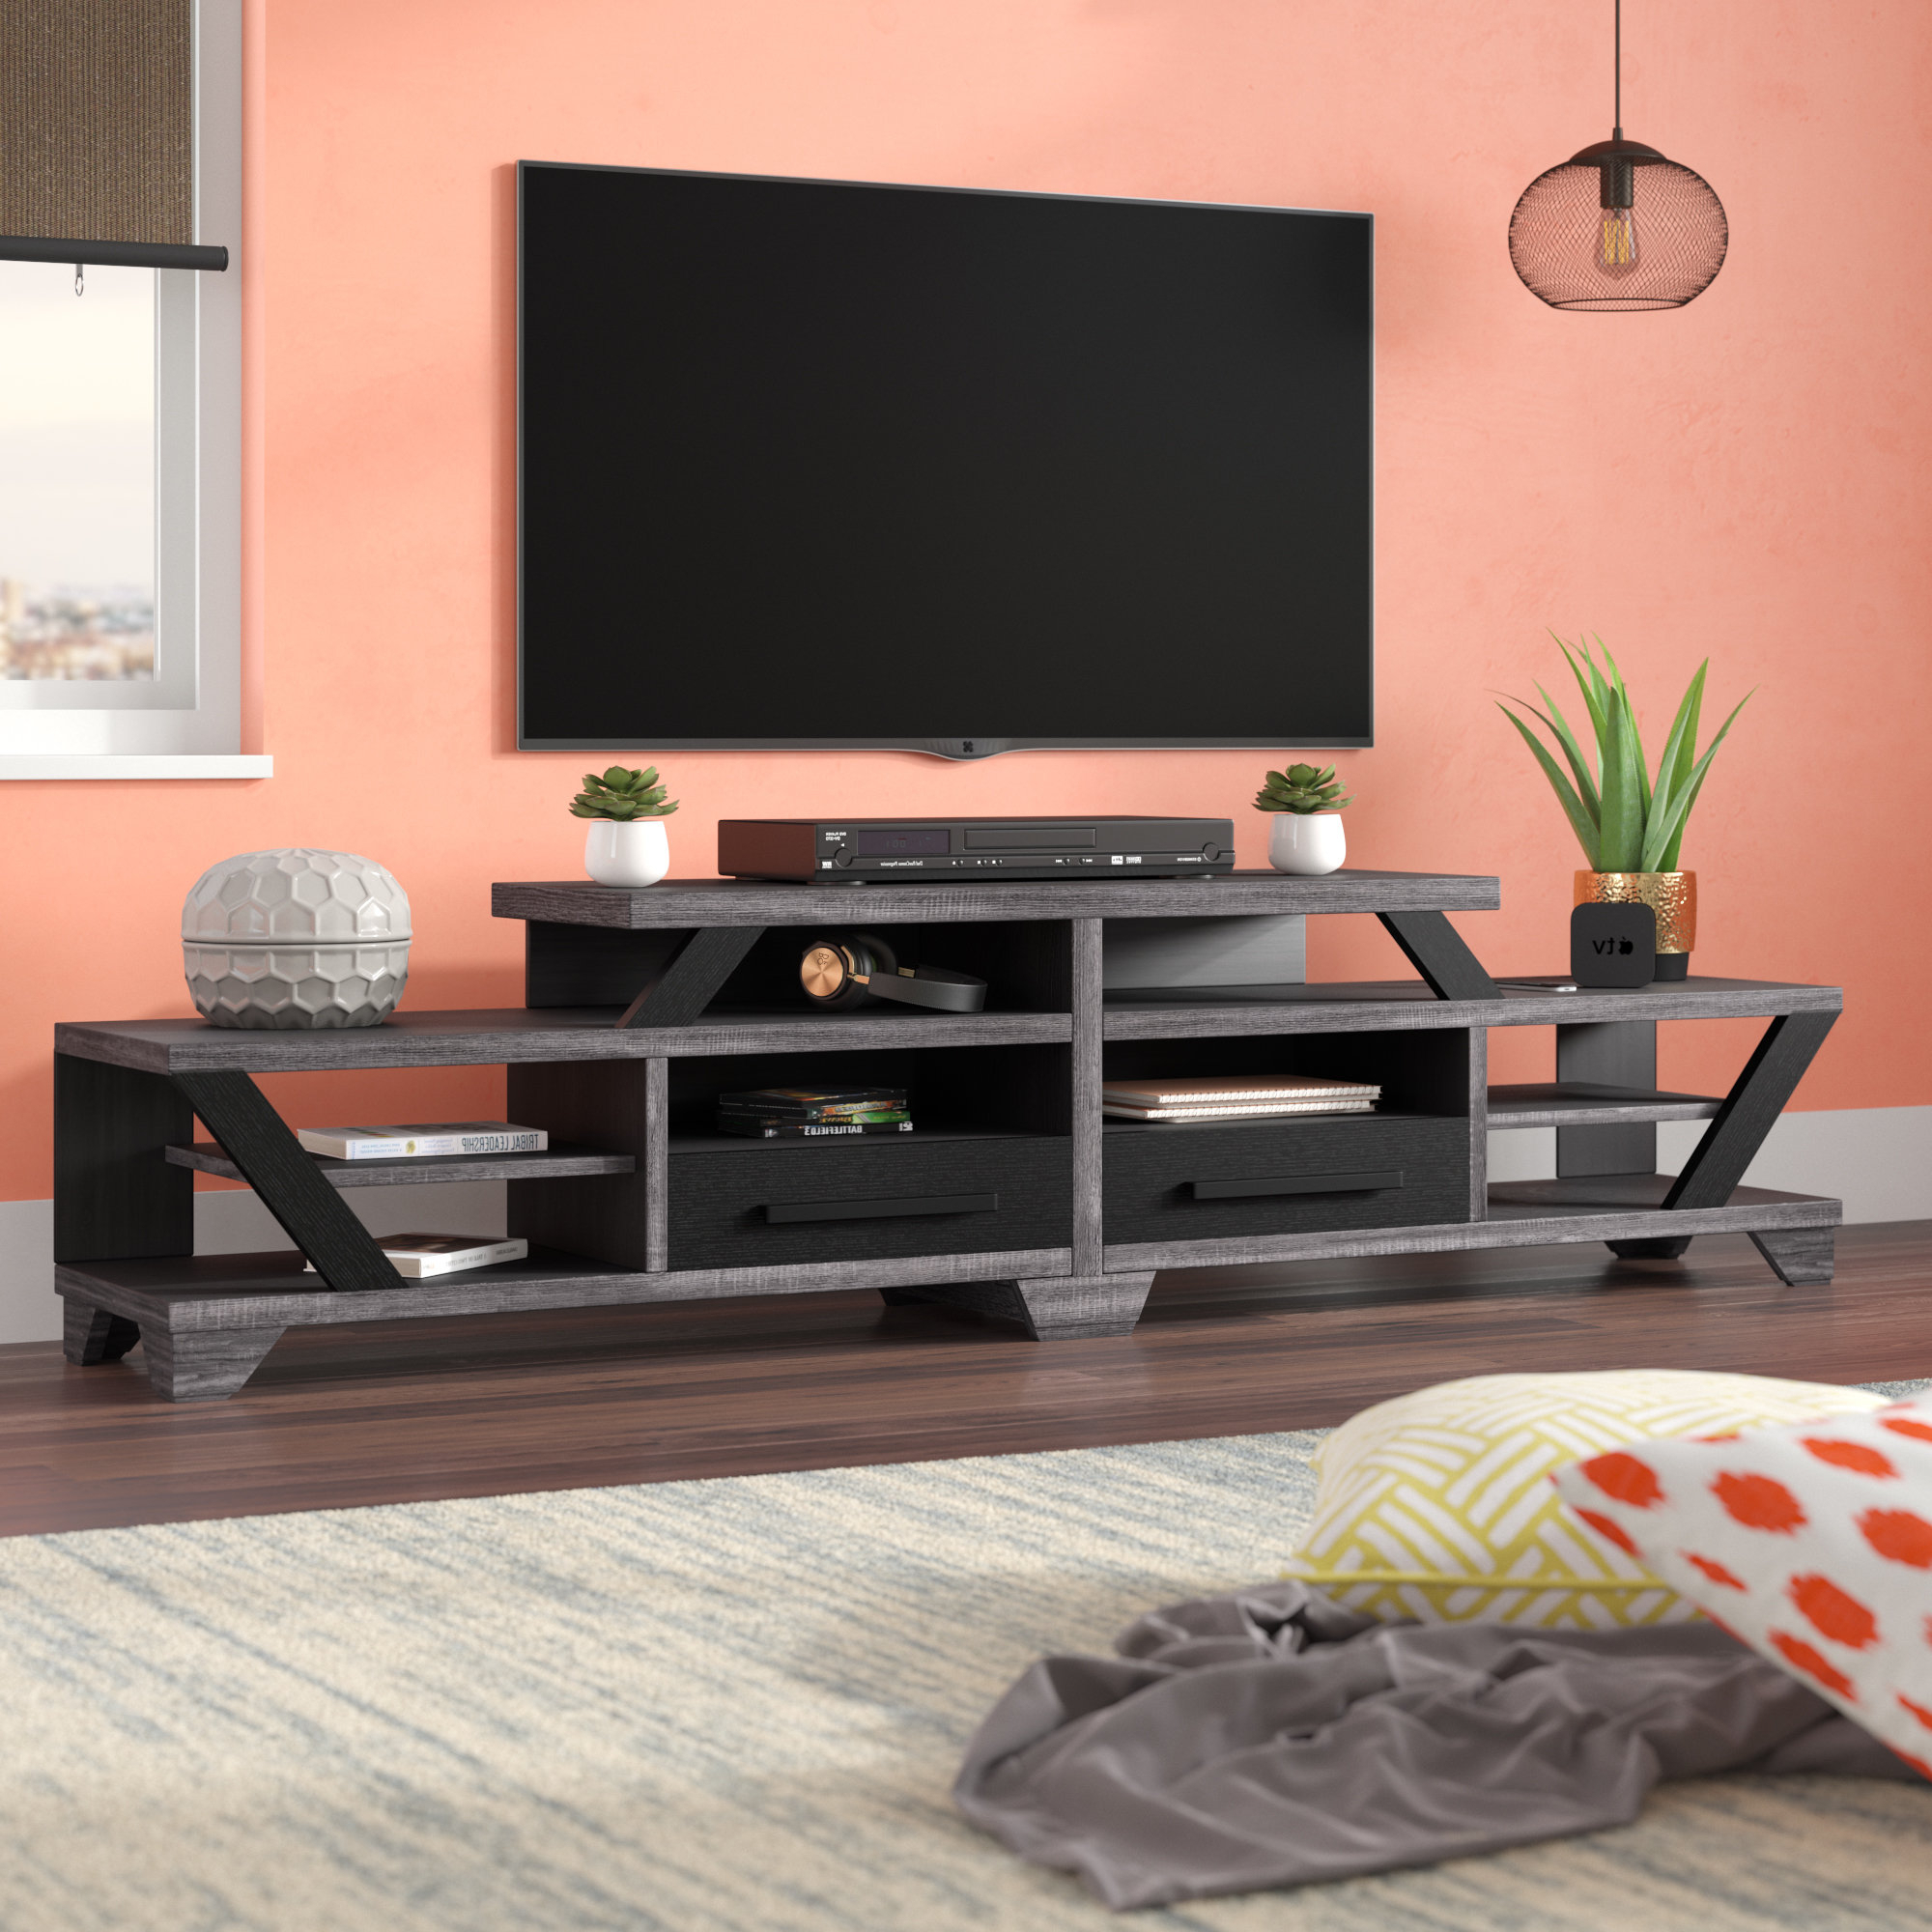 Brayden Studio Brosnan Contemporary Tv Stand For Tvs Up To 80 Throughout 2018 Contemporary Tv Cabinets For Flat Screens (Gallery 4 of 20)